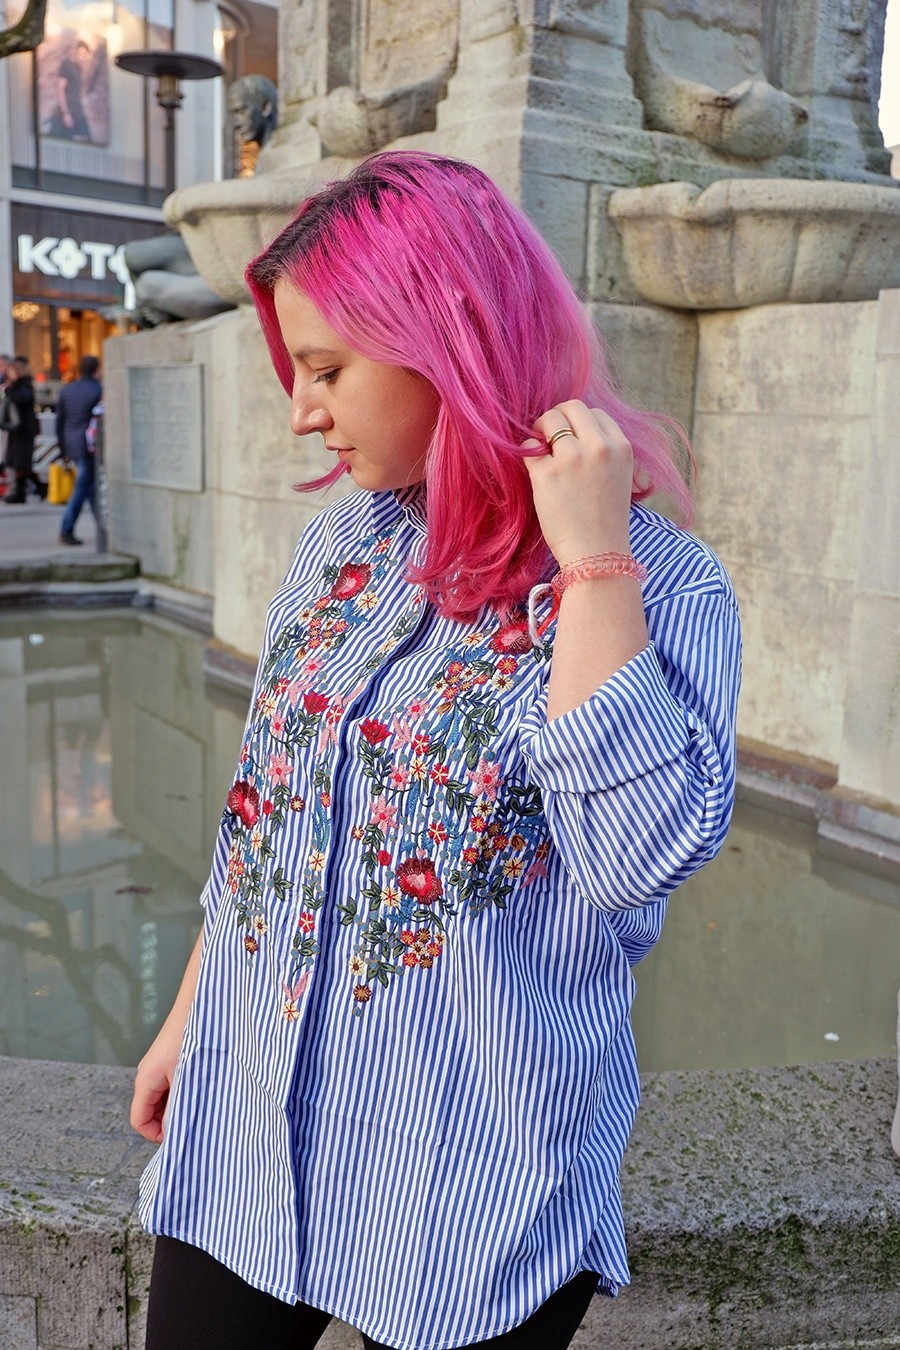 The Embroidered Shirt